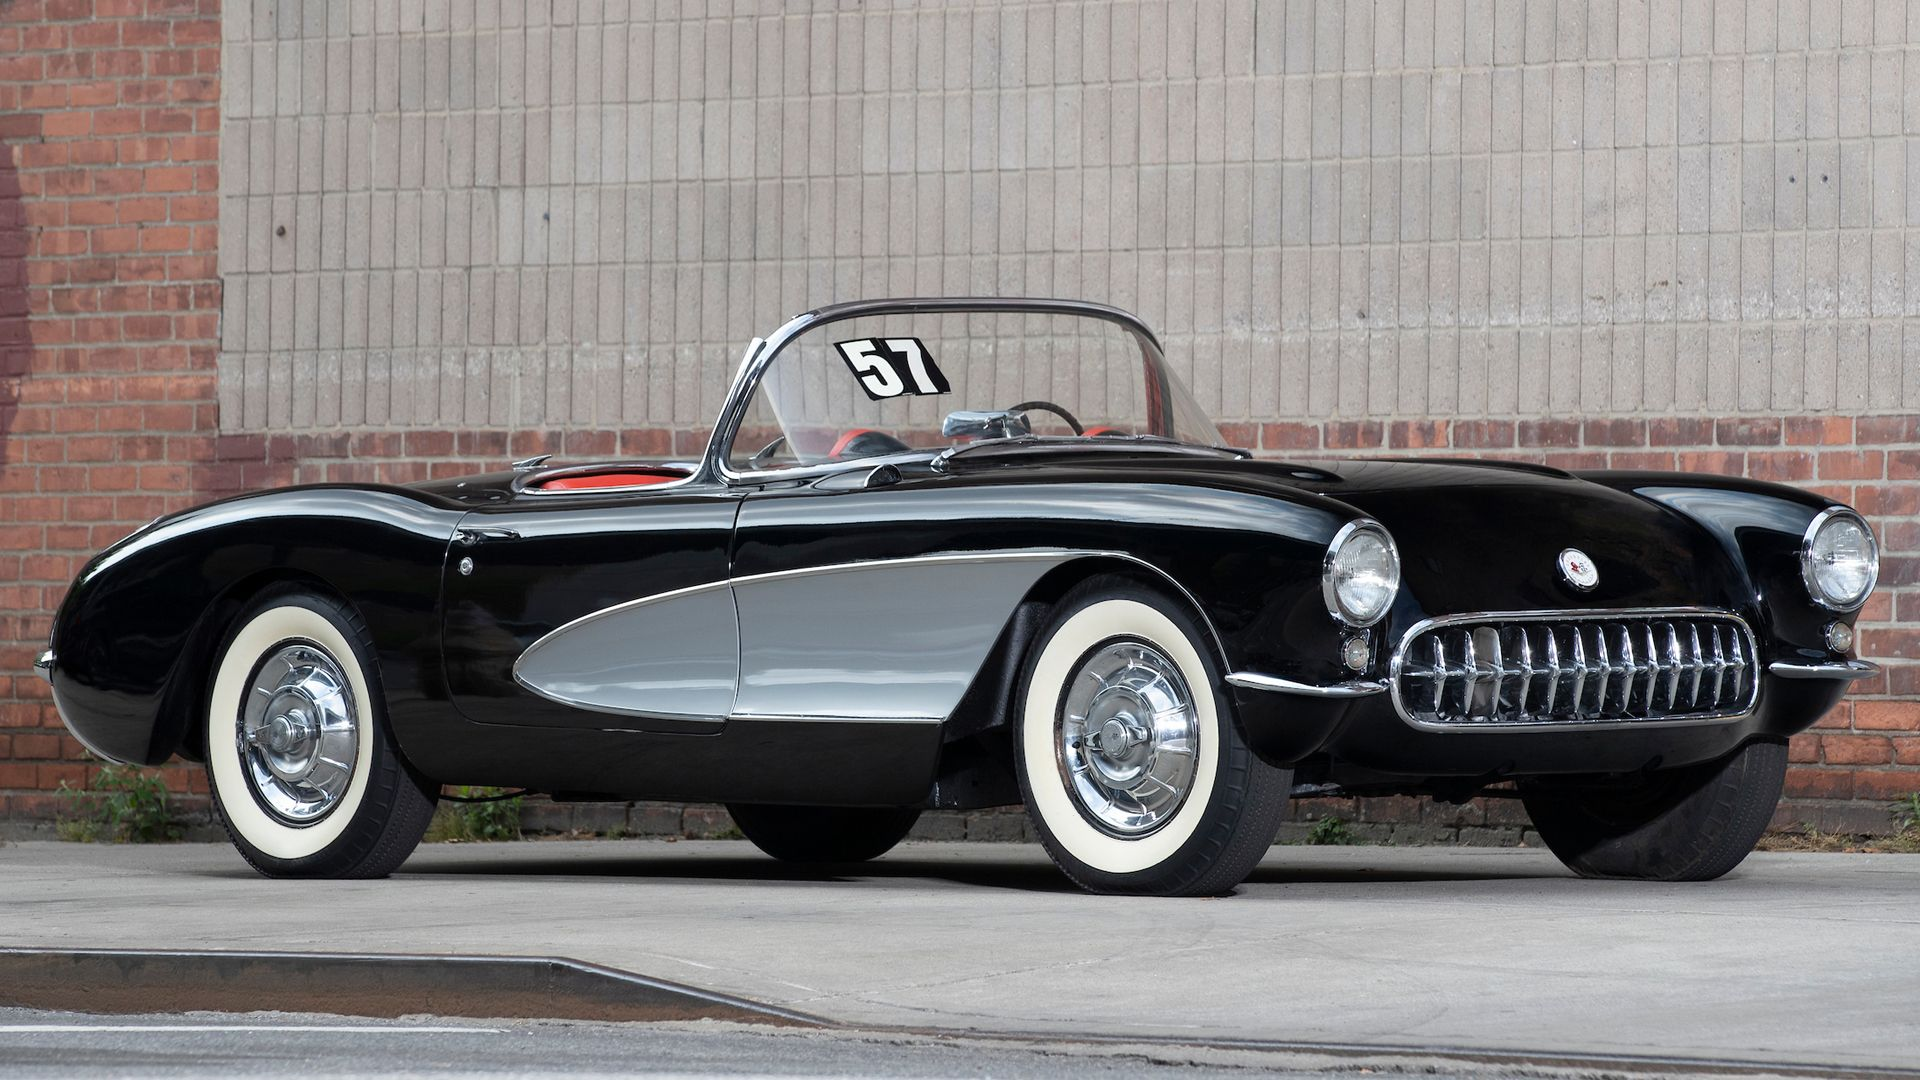 Time Is Running Out To Win This Restored 1957 Chevrolet Corvette